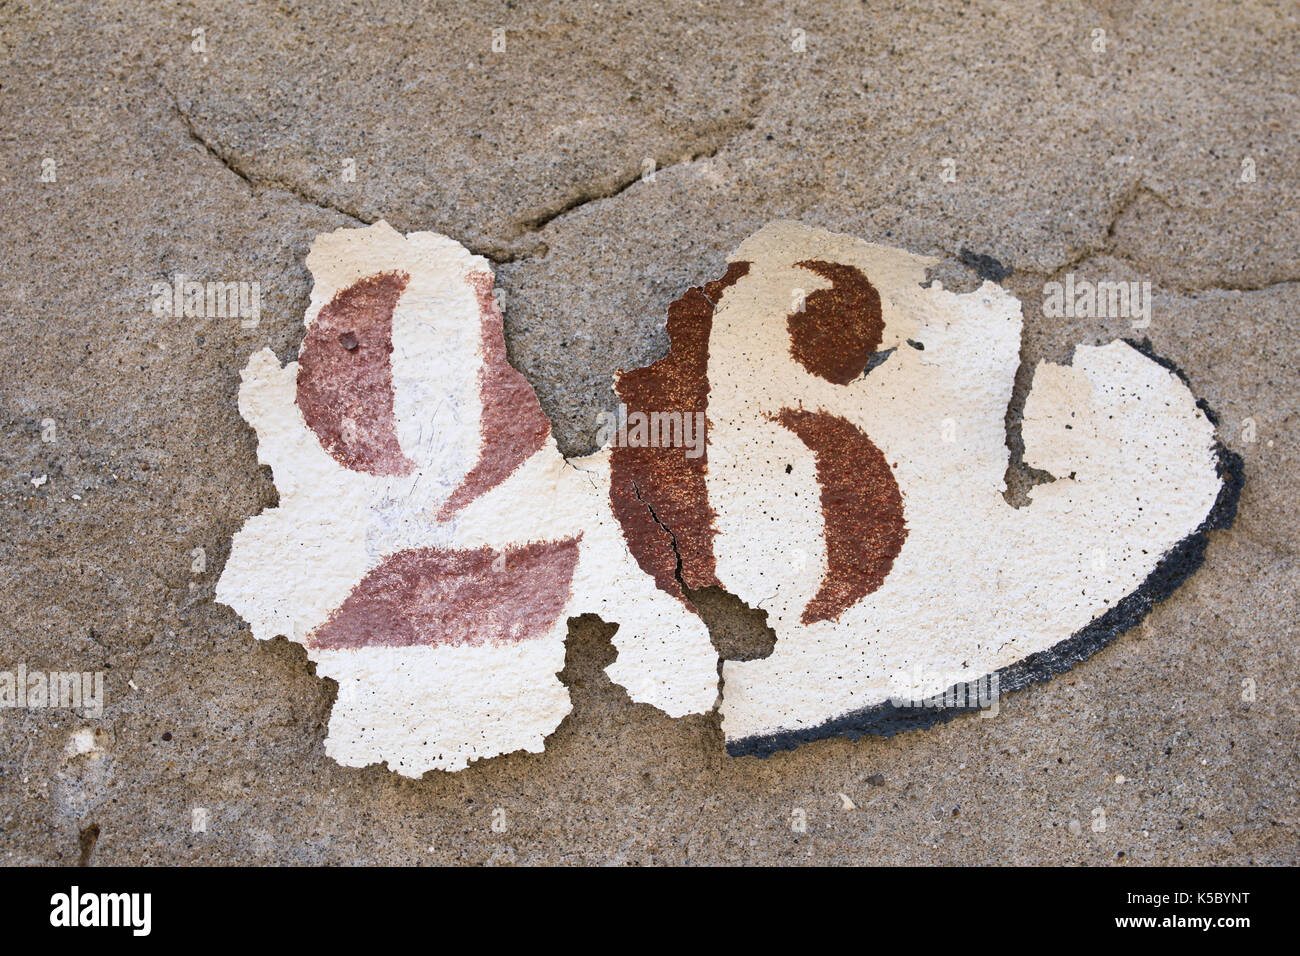 The peeling paint layer.  Painted number 26, destroyed  by weather, walls of the city Venice. Italy. The humidity, damp, dampness, water influence. - Stock Image